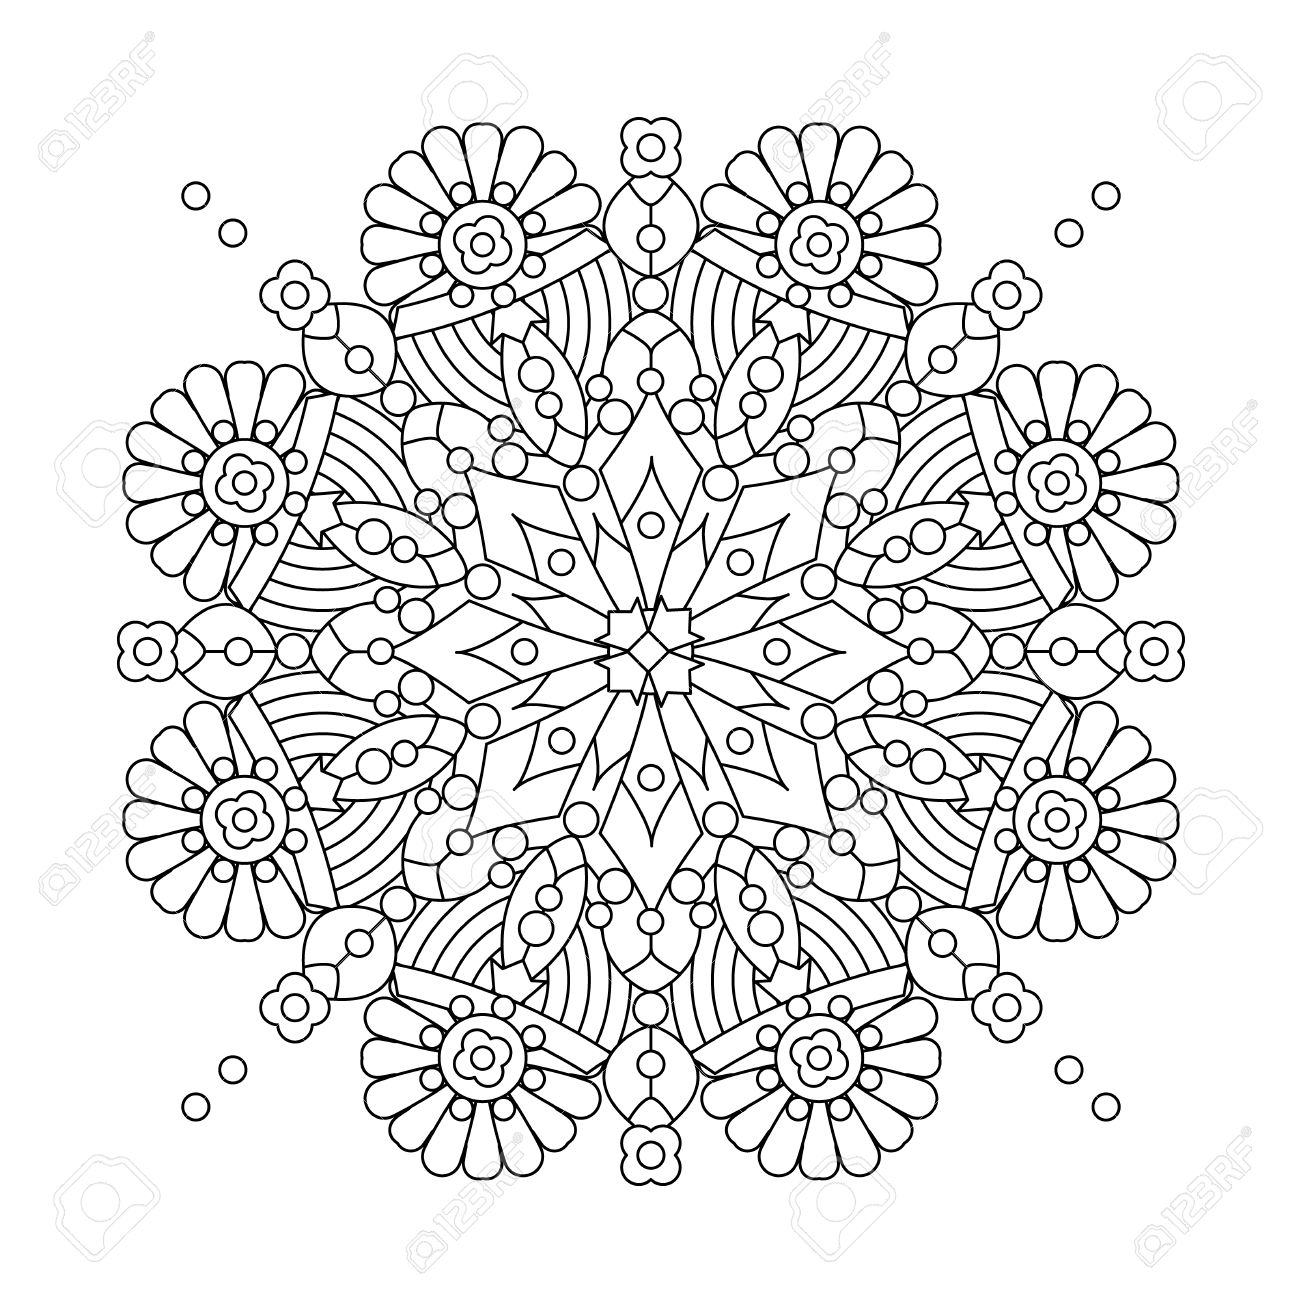 Coloring book snowflake - Abstract Mandala Or Whimsical Snowflake Line Art Design Or Coloring Page Stock Vector 59915530